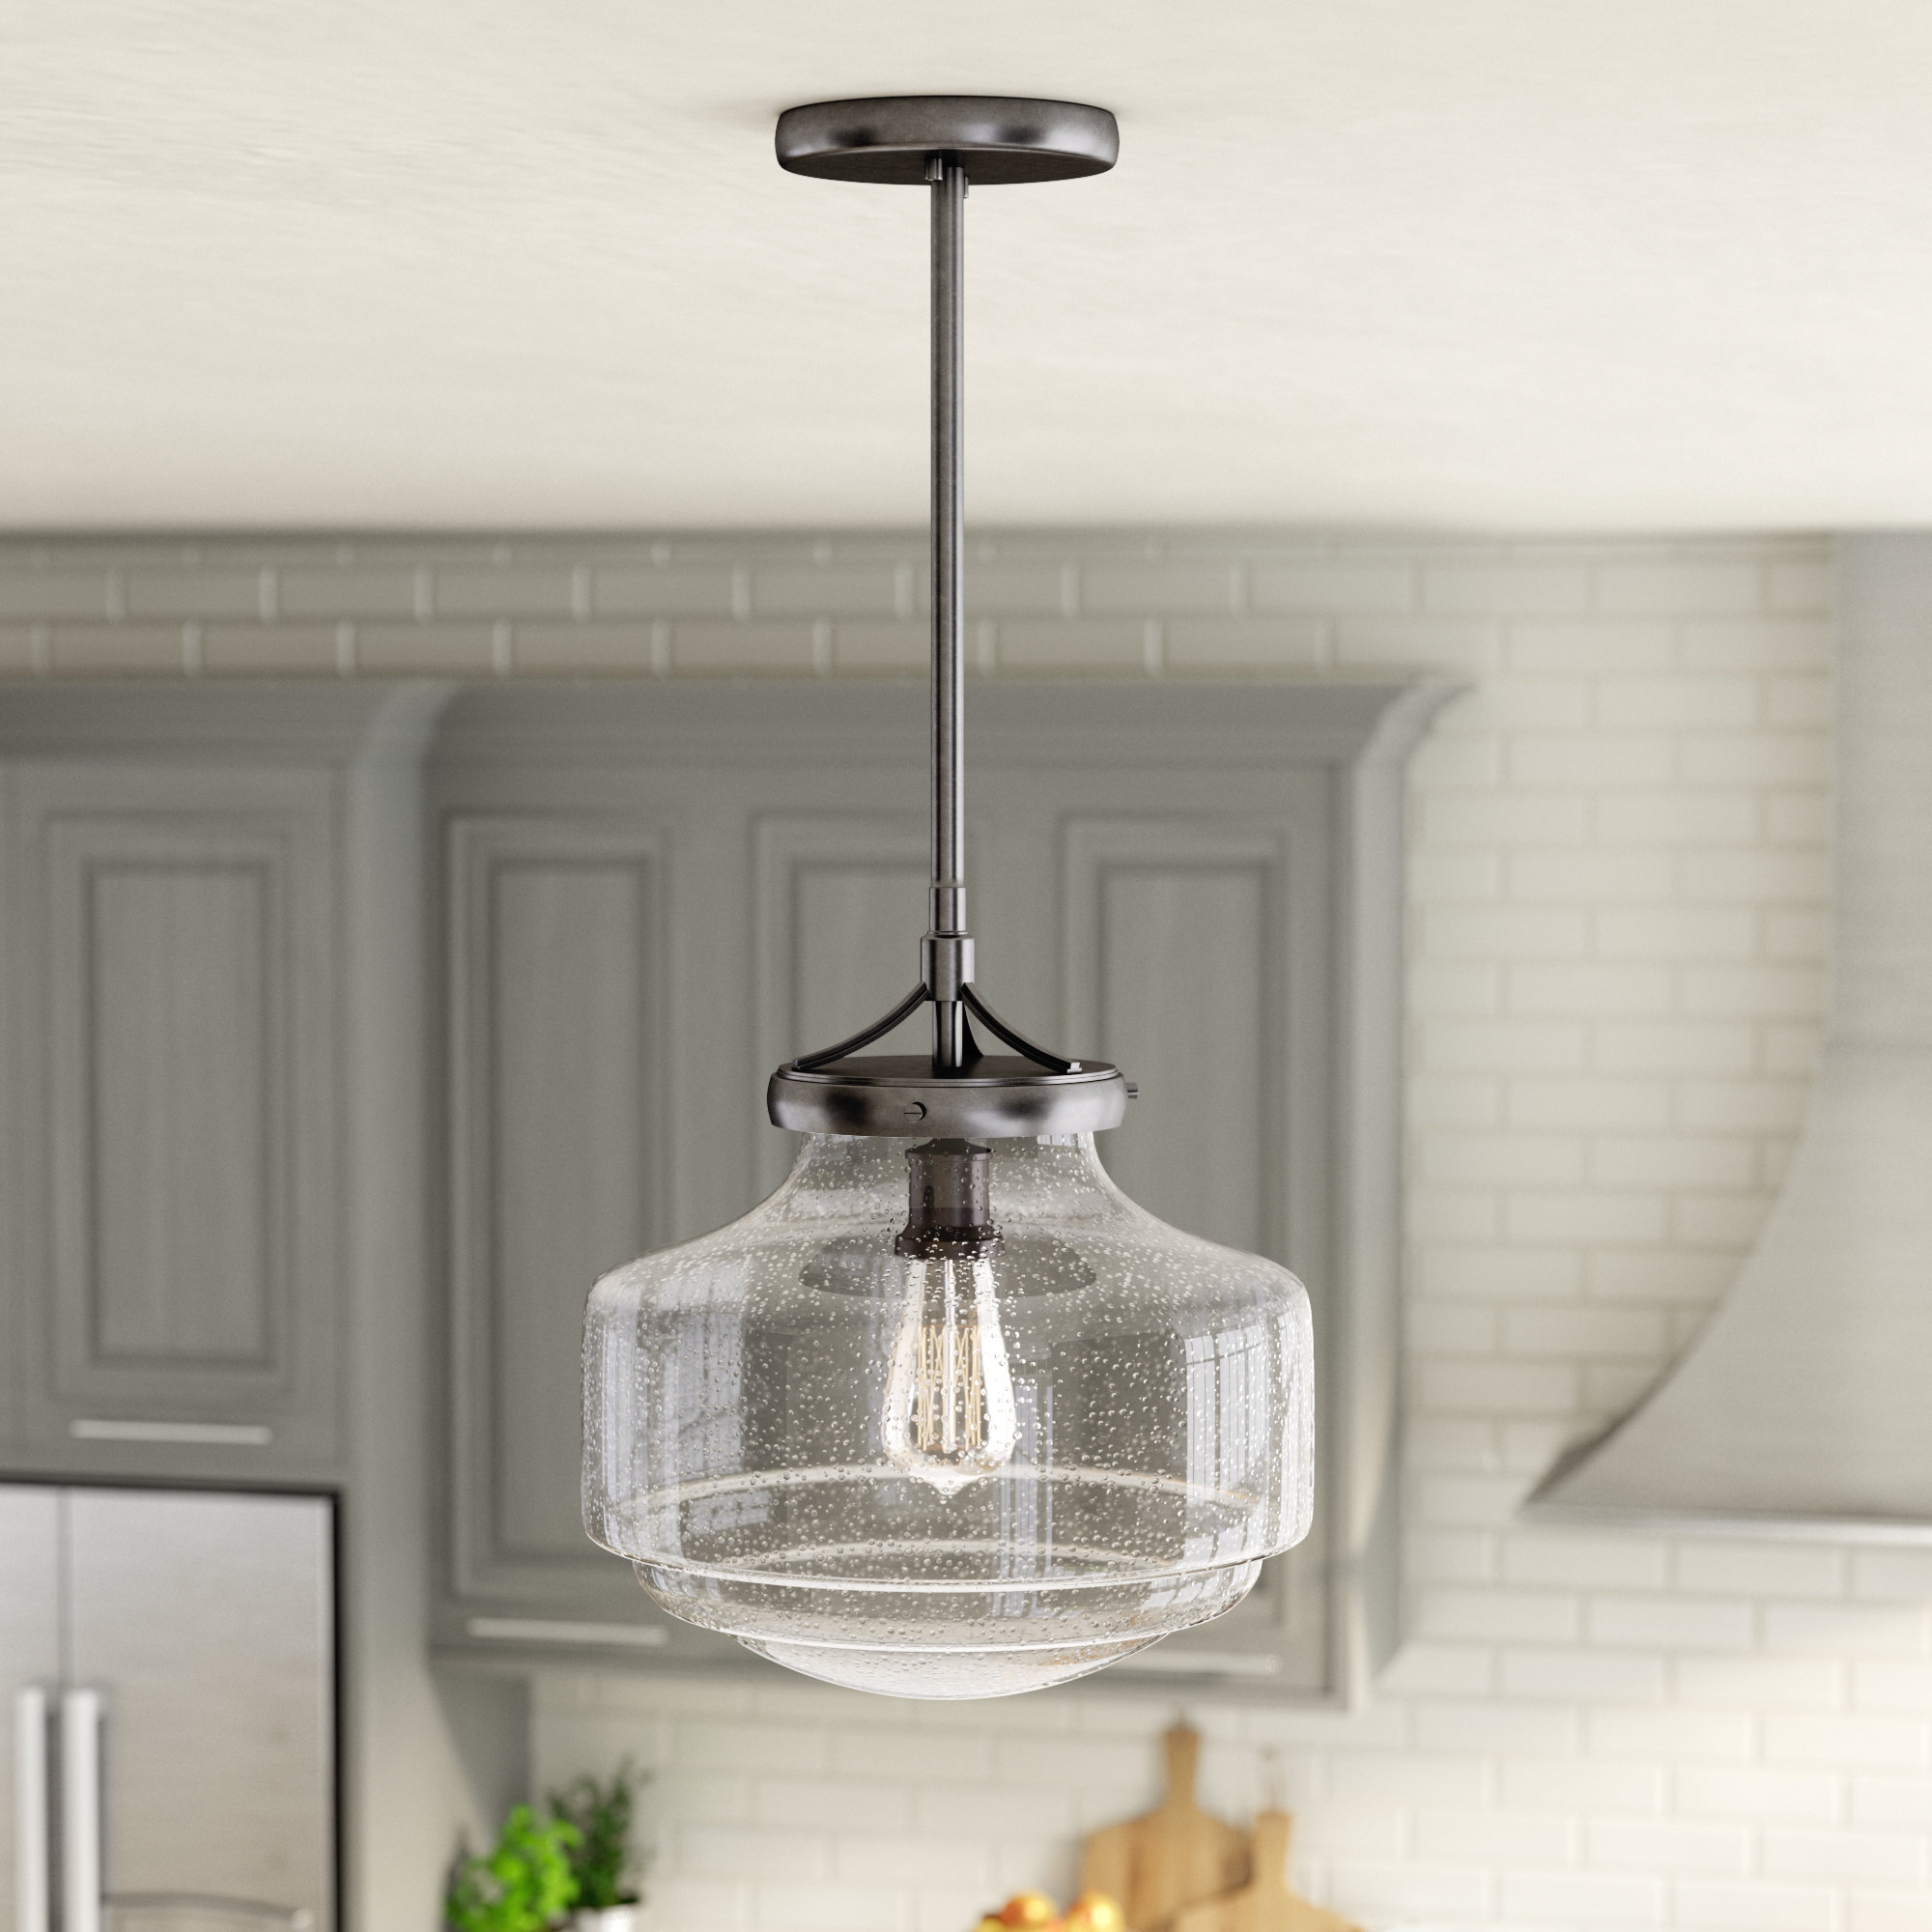 Nadine 1-Light Single Schoolhouse Pendants with Famous Laurel Foundry Modern Farmhouse Marybeth 1-Light Schoolhouse